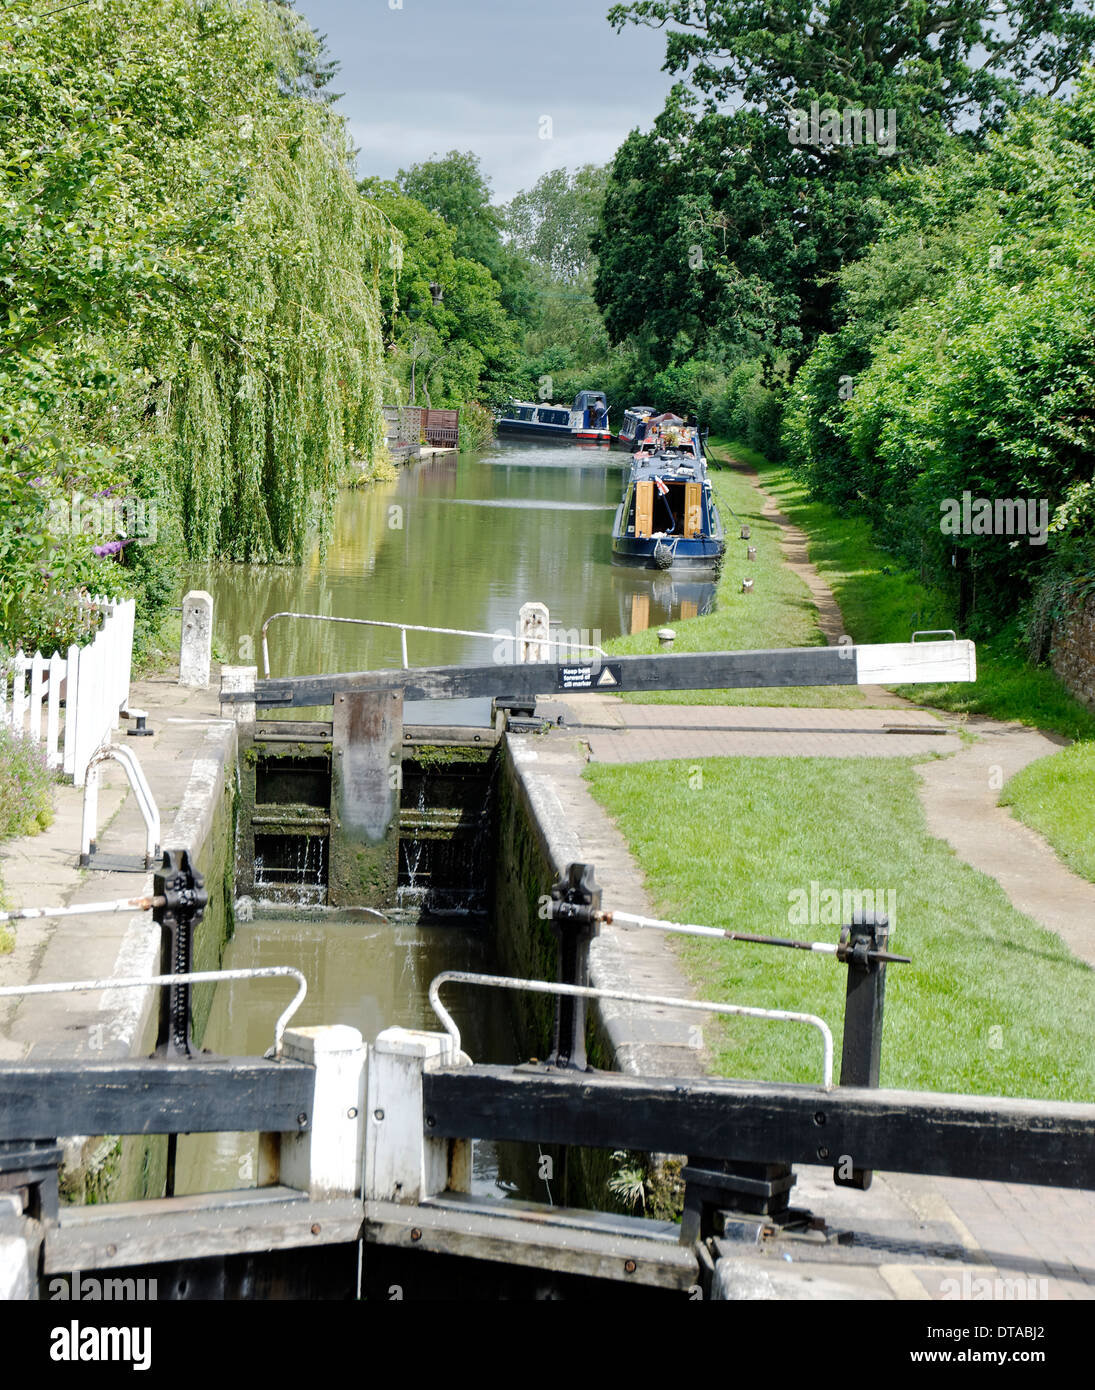 Canal Lock on the Oxford Canal at Cropredy, Oxfordshire, England - Stock Image